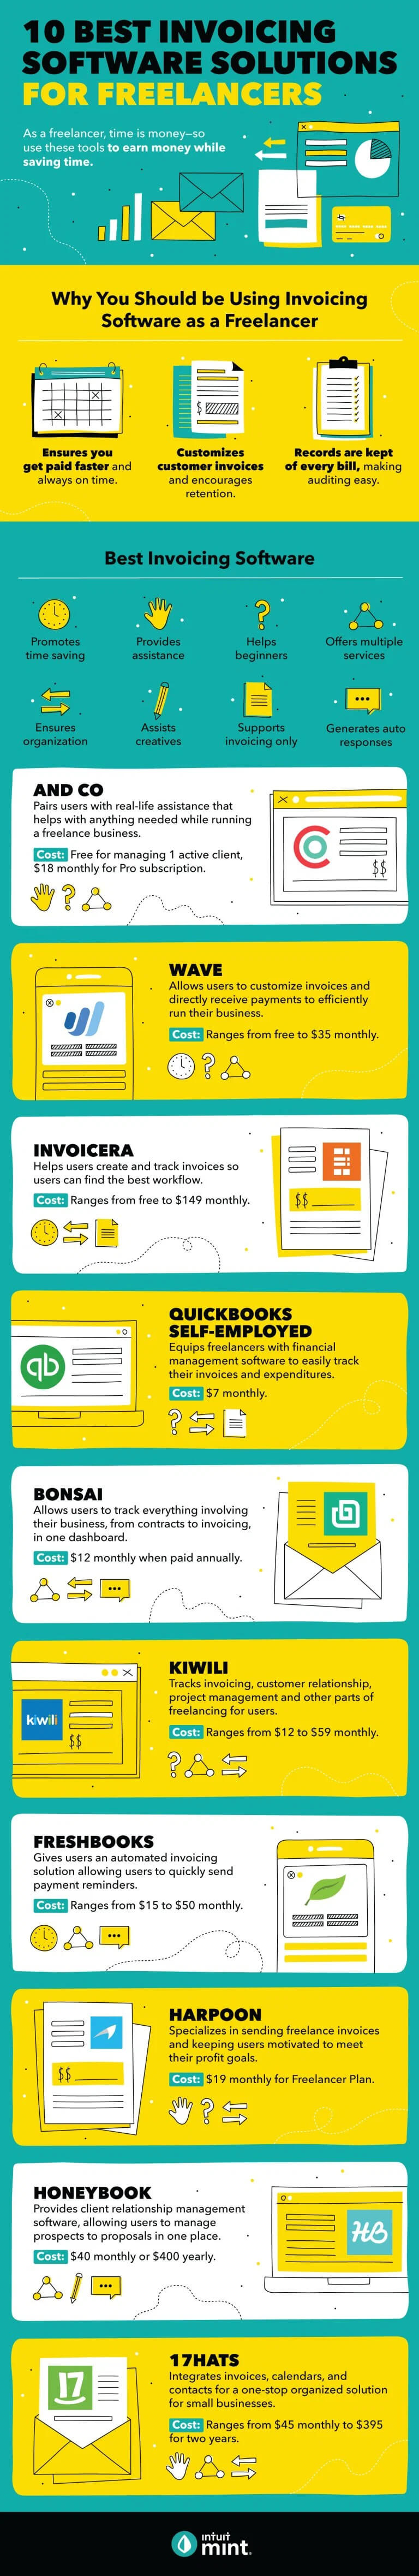 Infographic: 10 best invoicing software solutions for freelancers